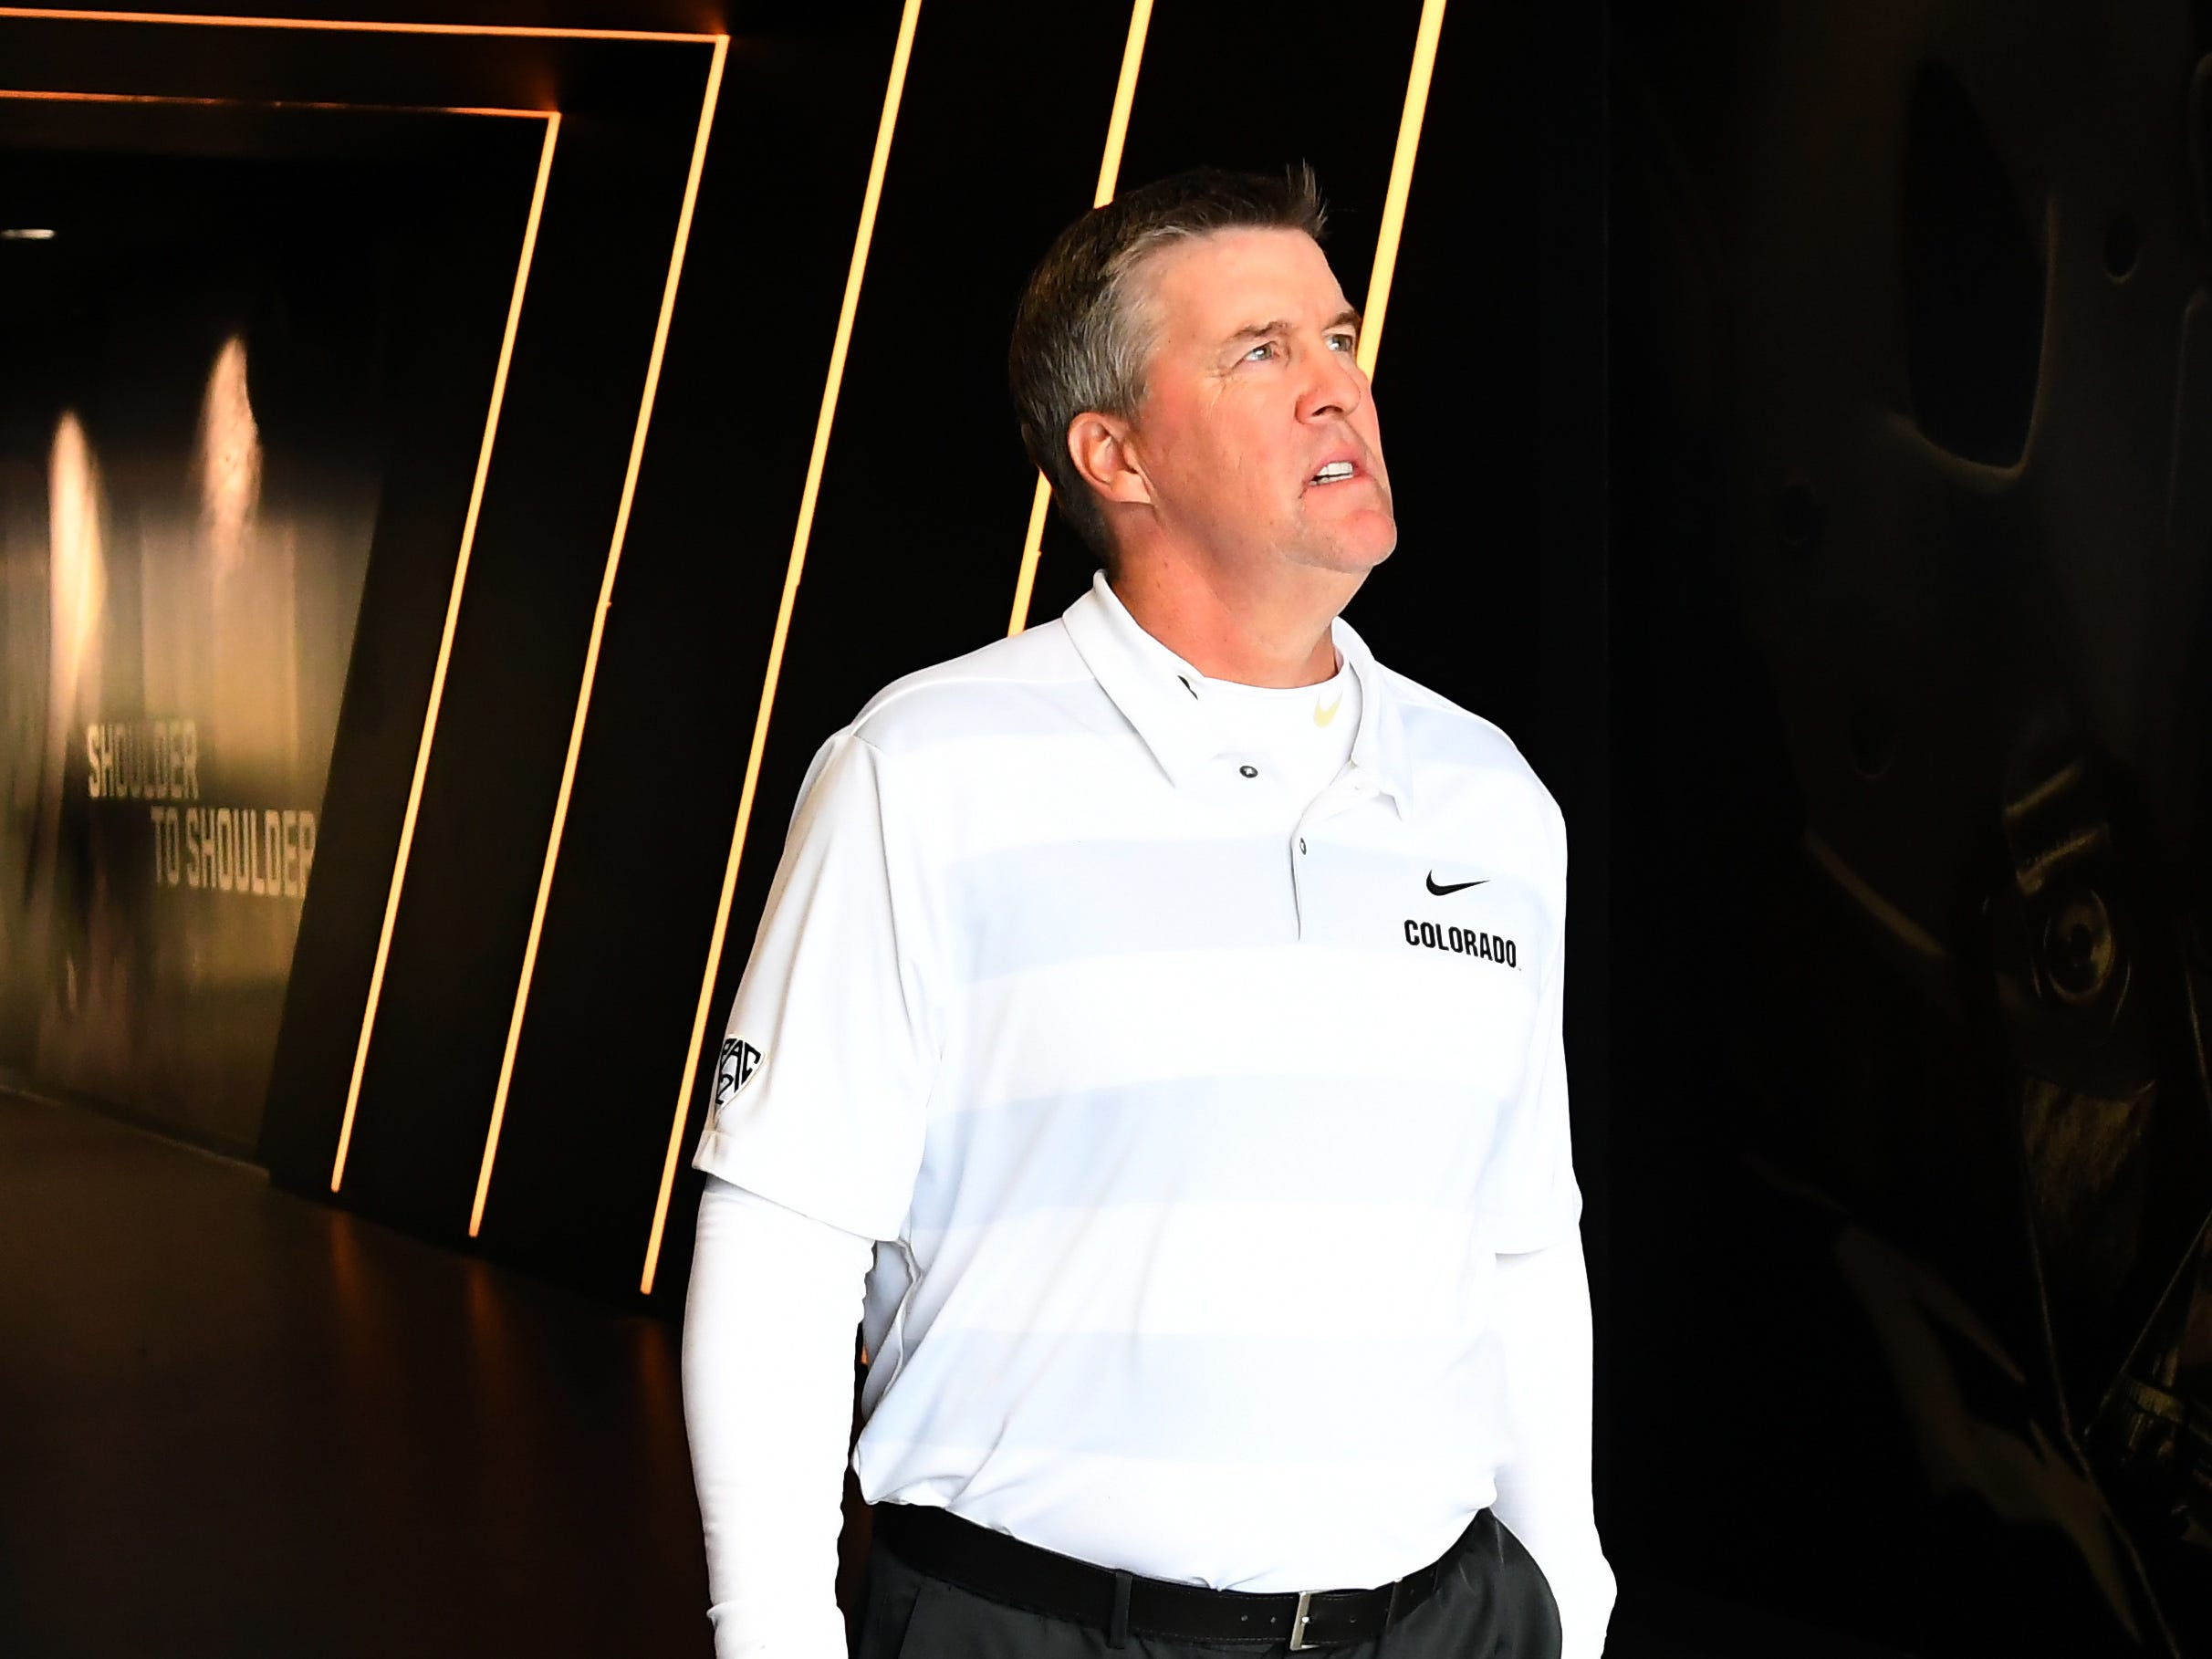 Oct 6, 2018; Boulder, CO, USA; Colorado Buffaloes head coach Mike MacIntyre before the game against the Arizona State Sun Devils at Folsom Field. Mandatory Credit: Ron Chenoy-USA TODAY Sports